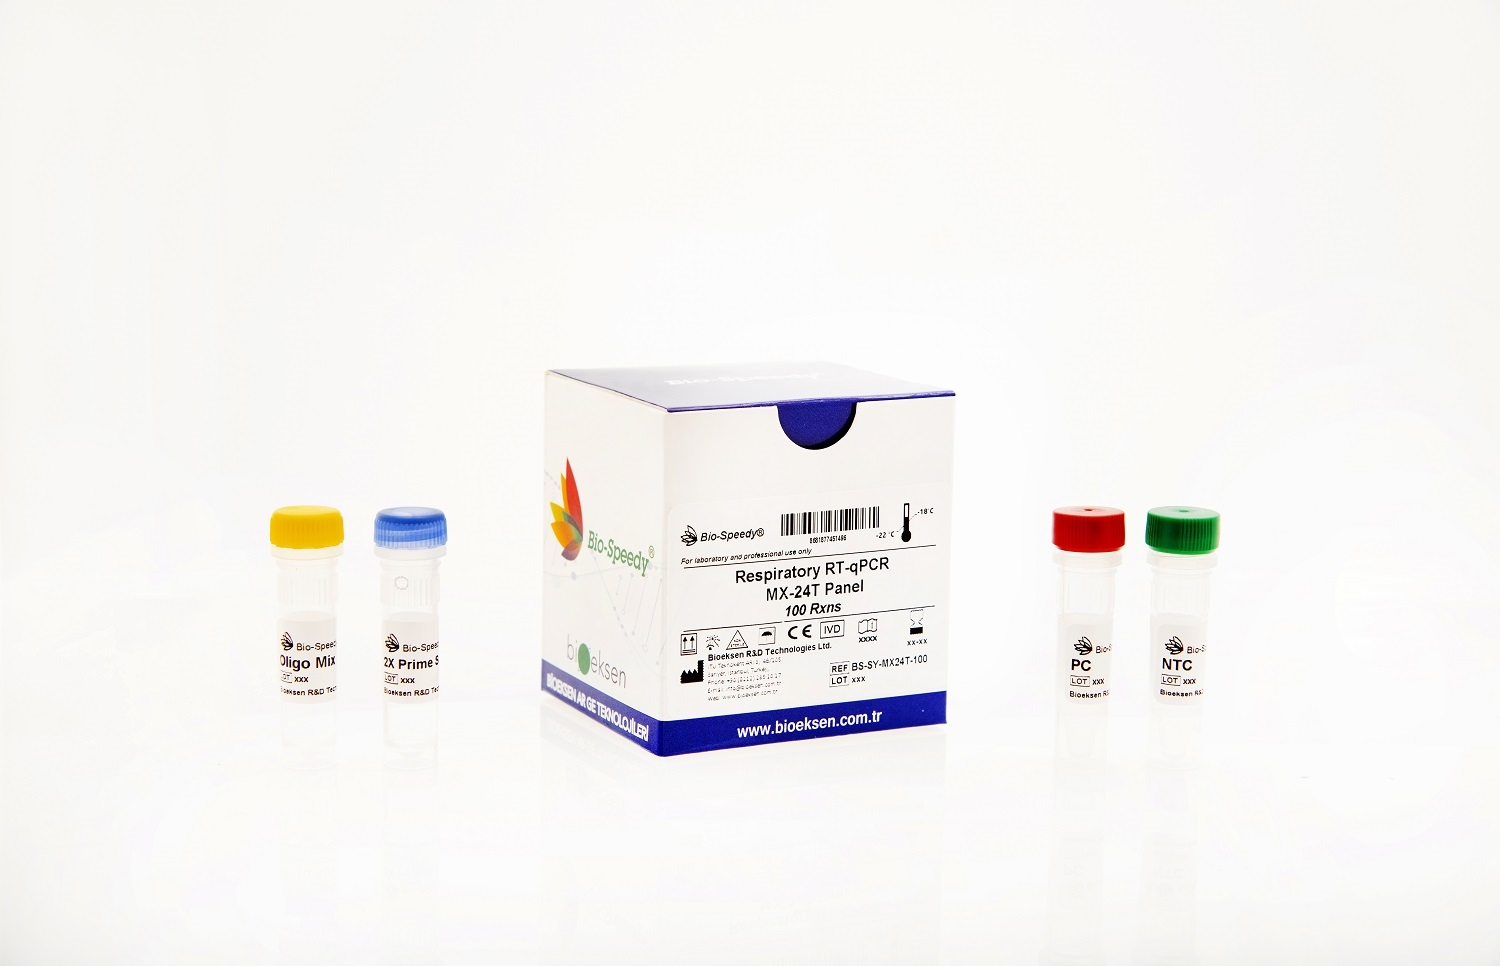 Bio-speedy® Solunum Yolu RT-qPCR MX-24T Panel